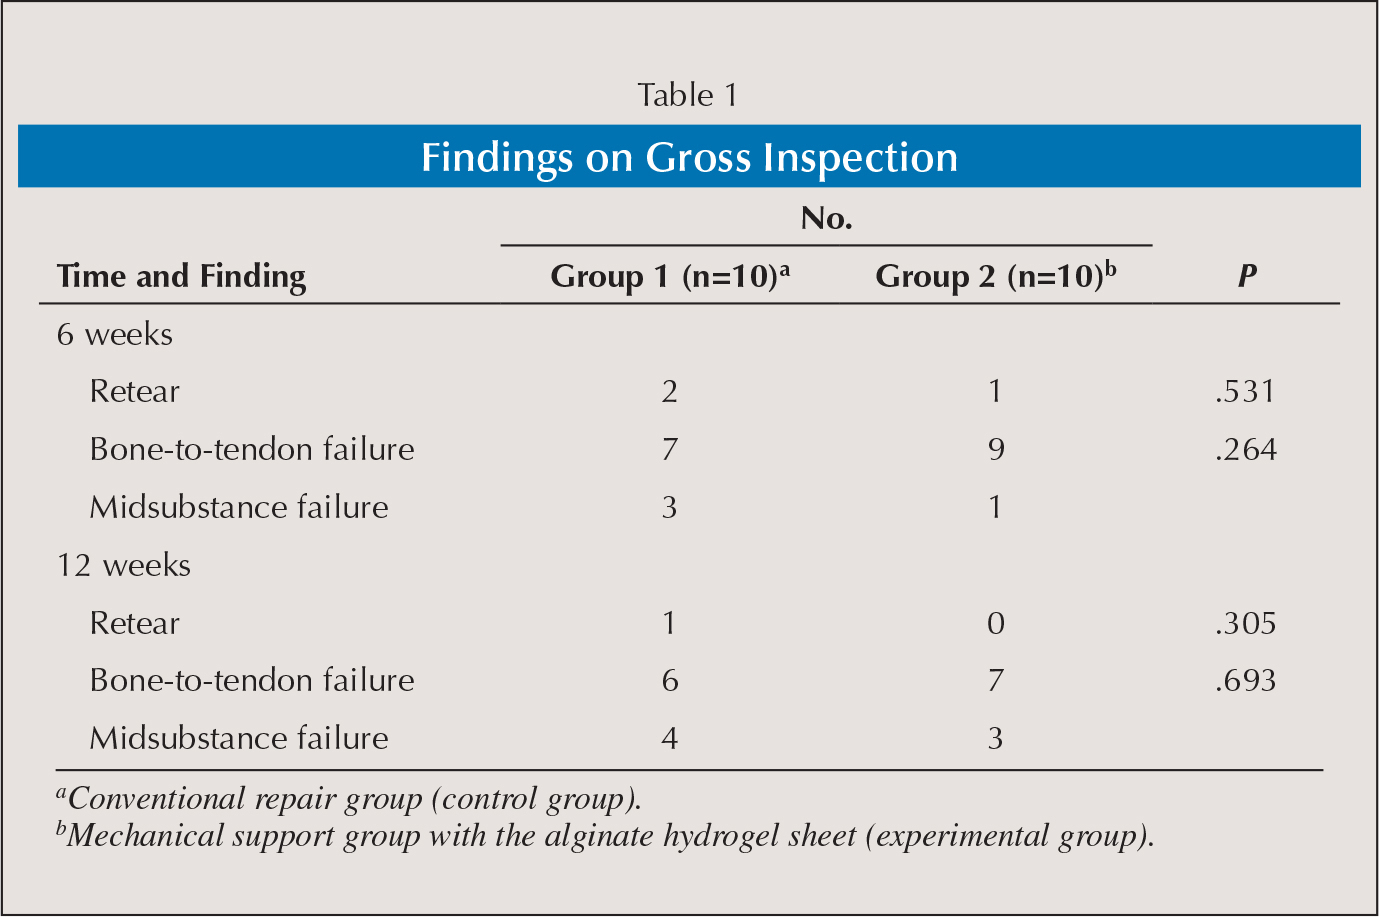 Findings on Gross Inspection